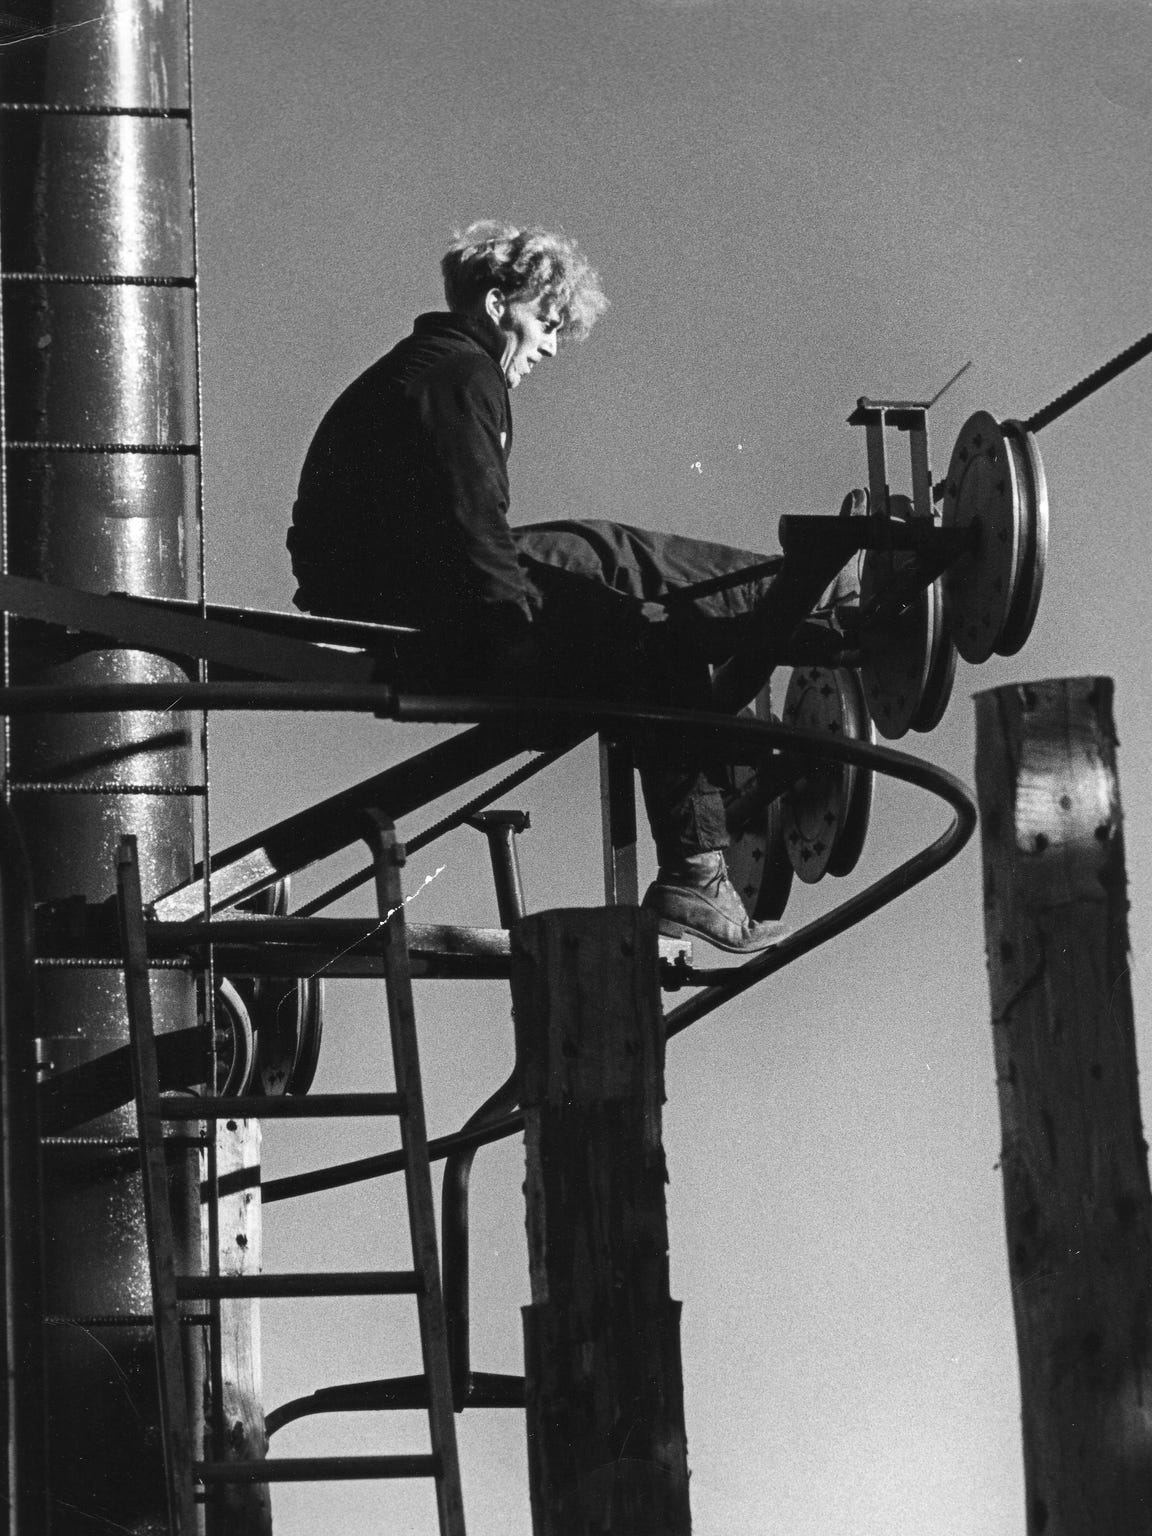 Worker_on_lift_tower